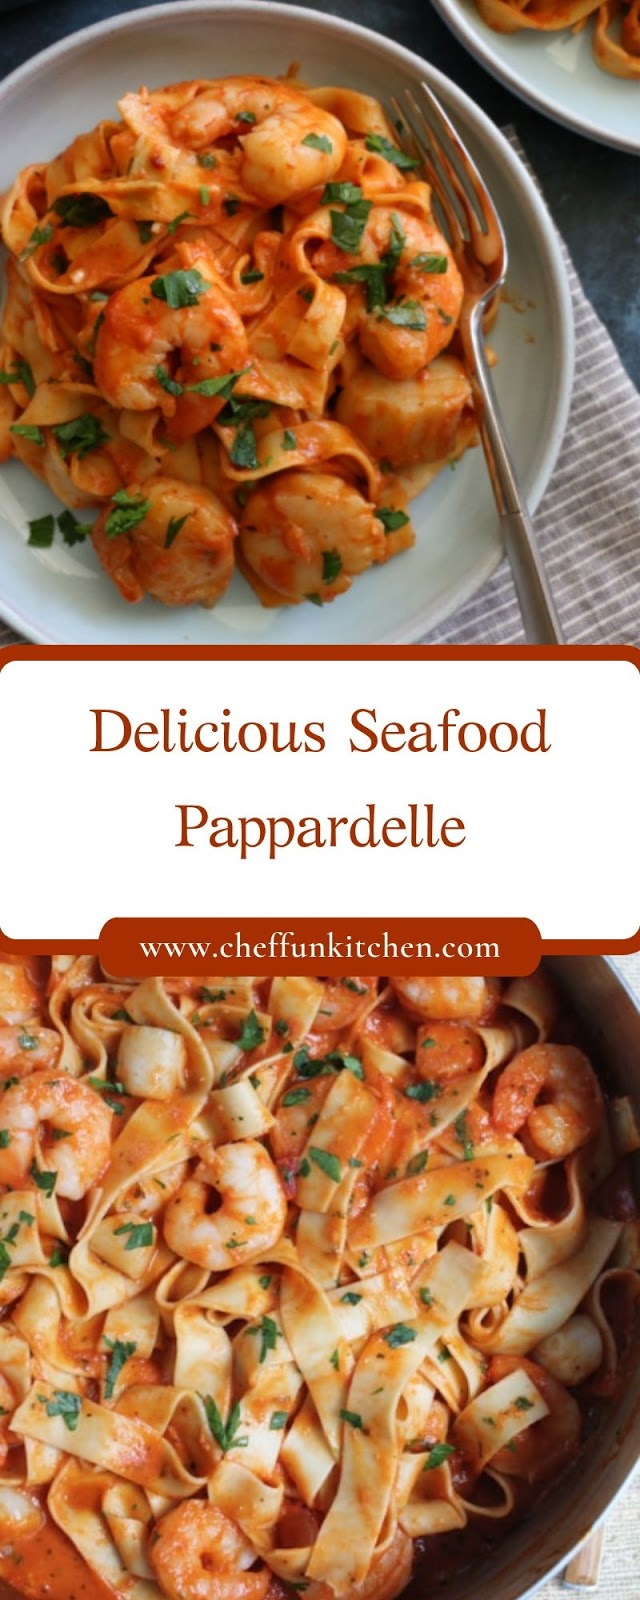 Delicious Seafood Pappardelle